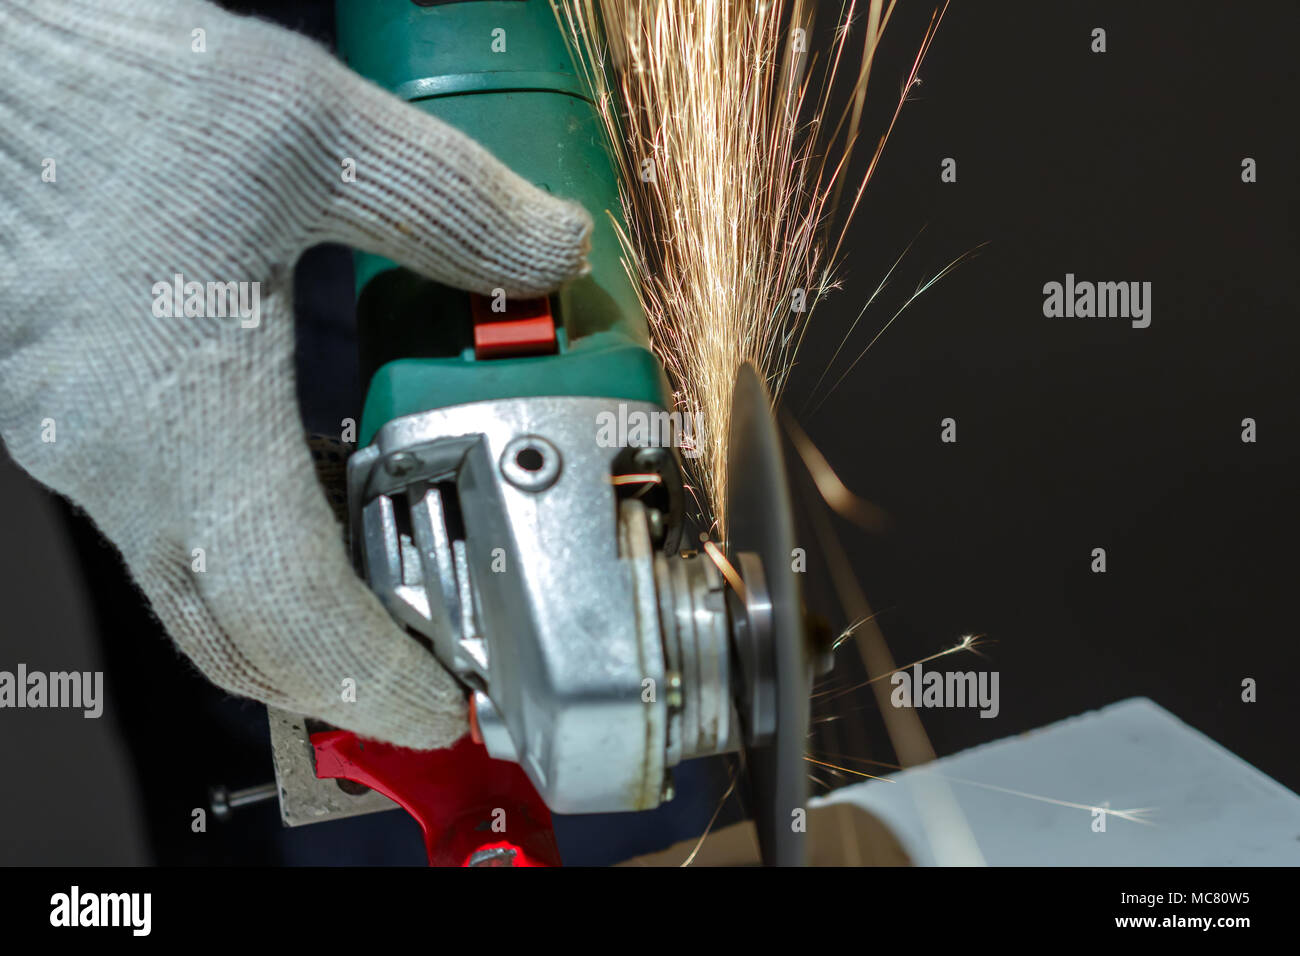 Angle grinder make a flash sparks - Stock Image